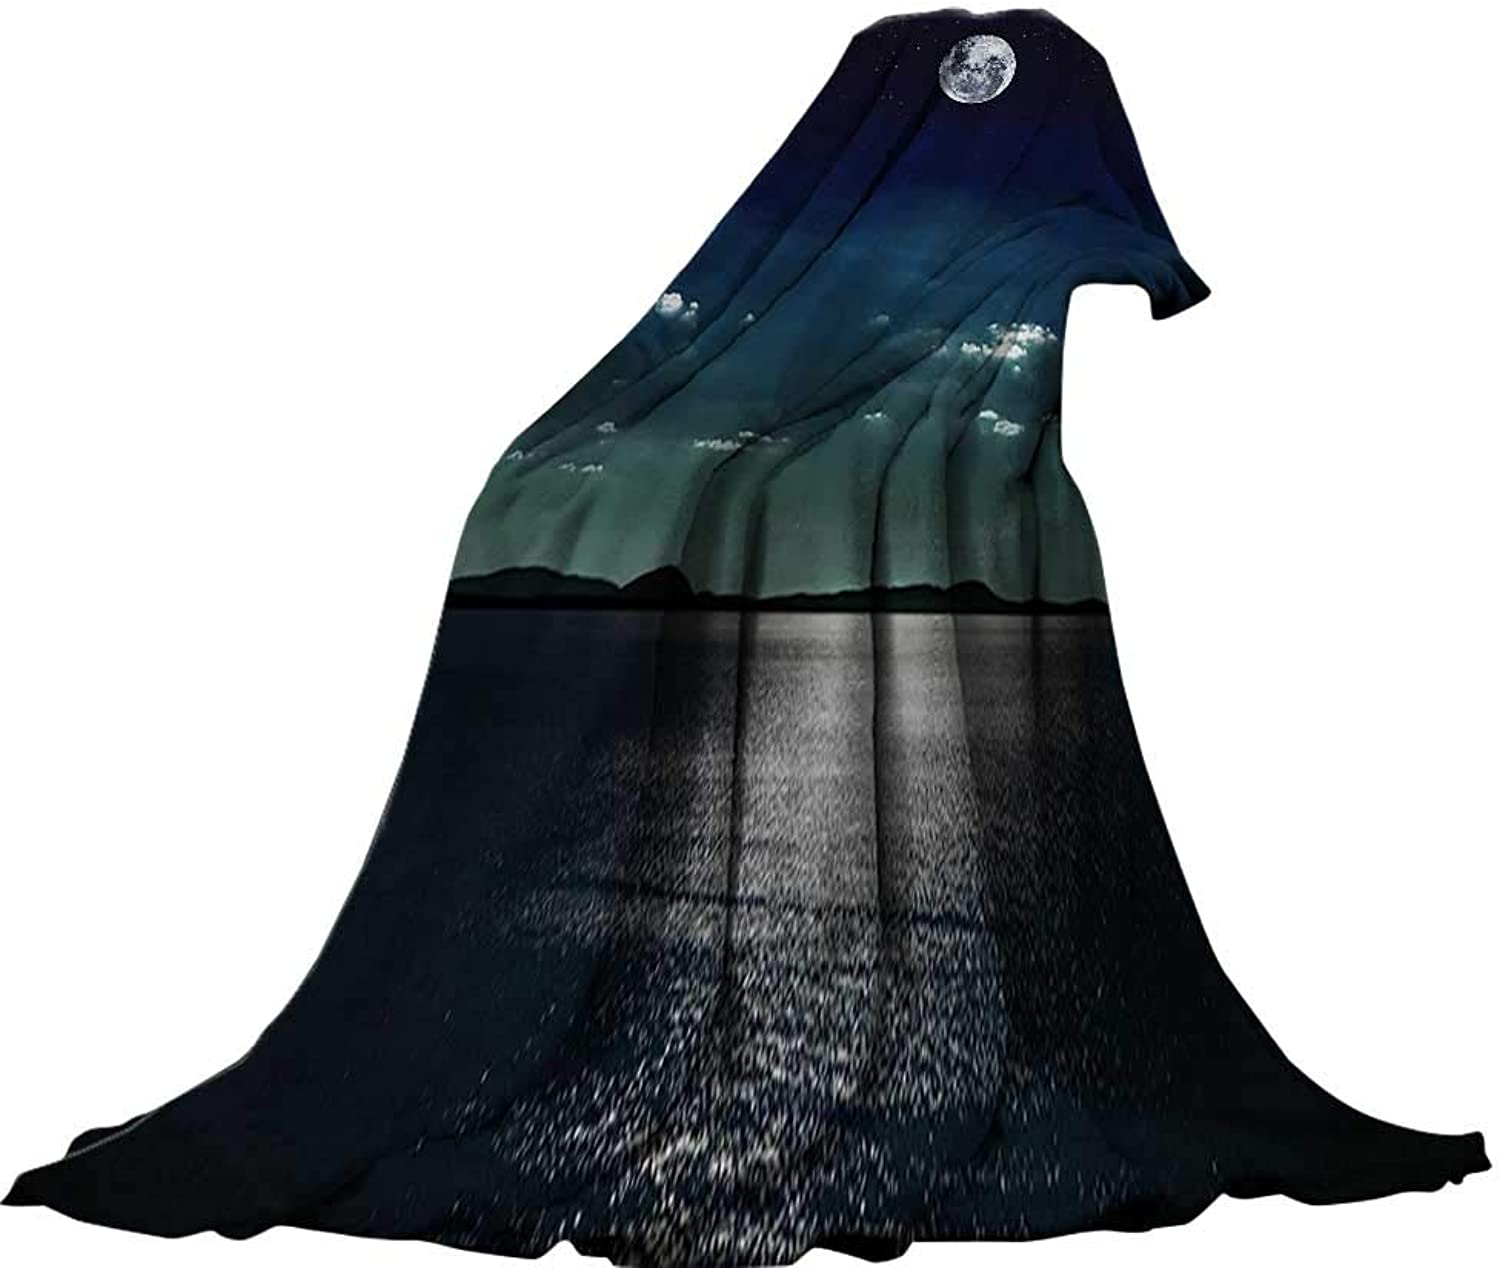 QINYAN-Home Warm Microfiber All Season Blanket (70 x60 ) Summer Quilt Comforter Ocean Decor Full Moon Reflected in The Sea Moonlight Surface Starry Sky Night Scenic View Black and Navy.